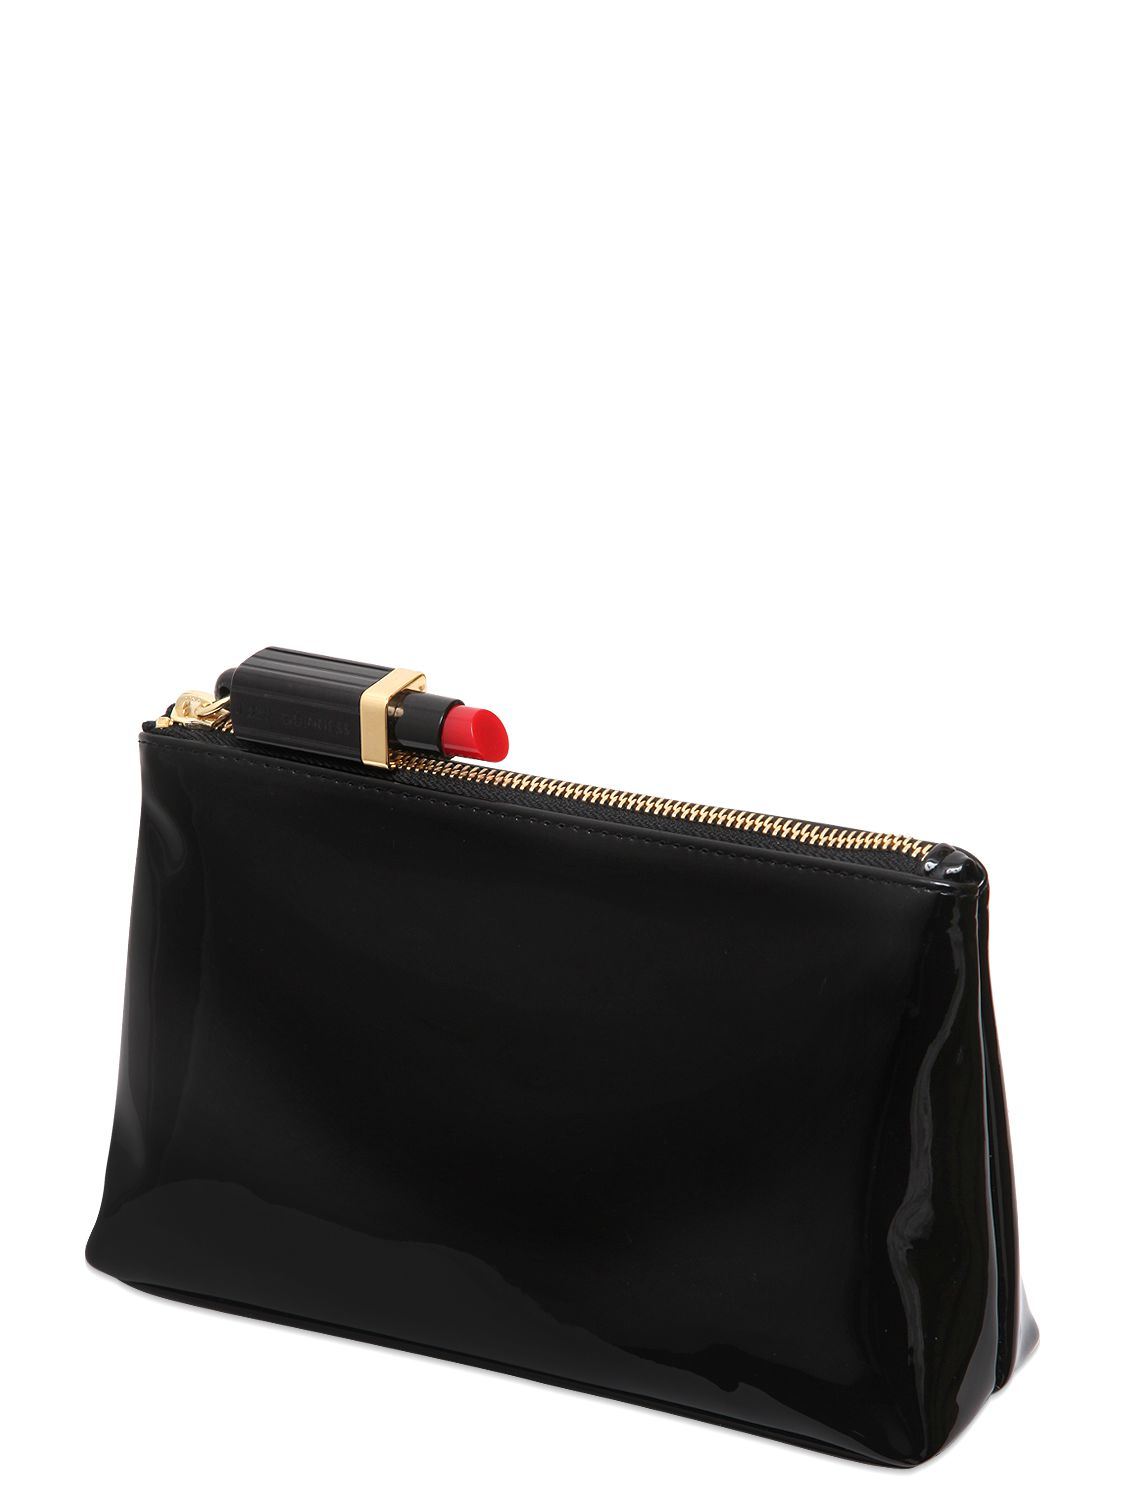 Lulu Guinness Faux Patent Leather Make Up Bag In Black Lyst